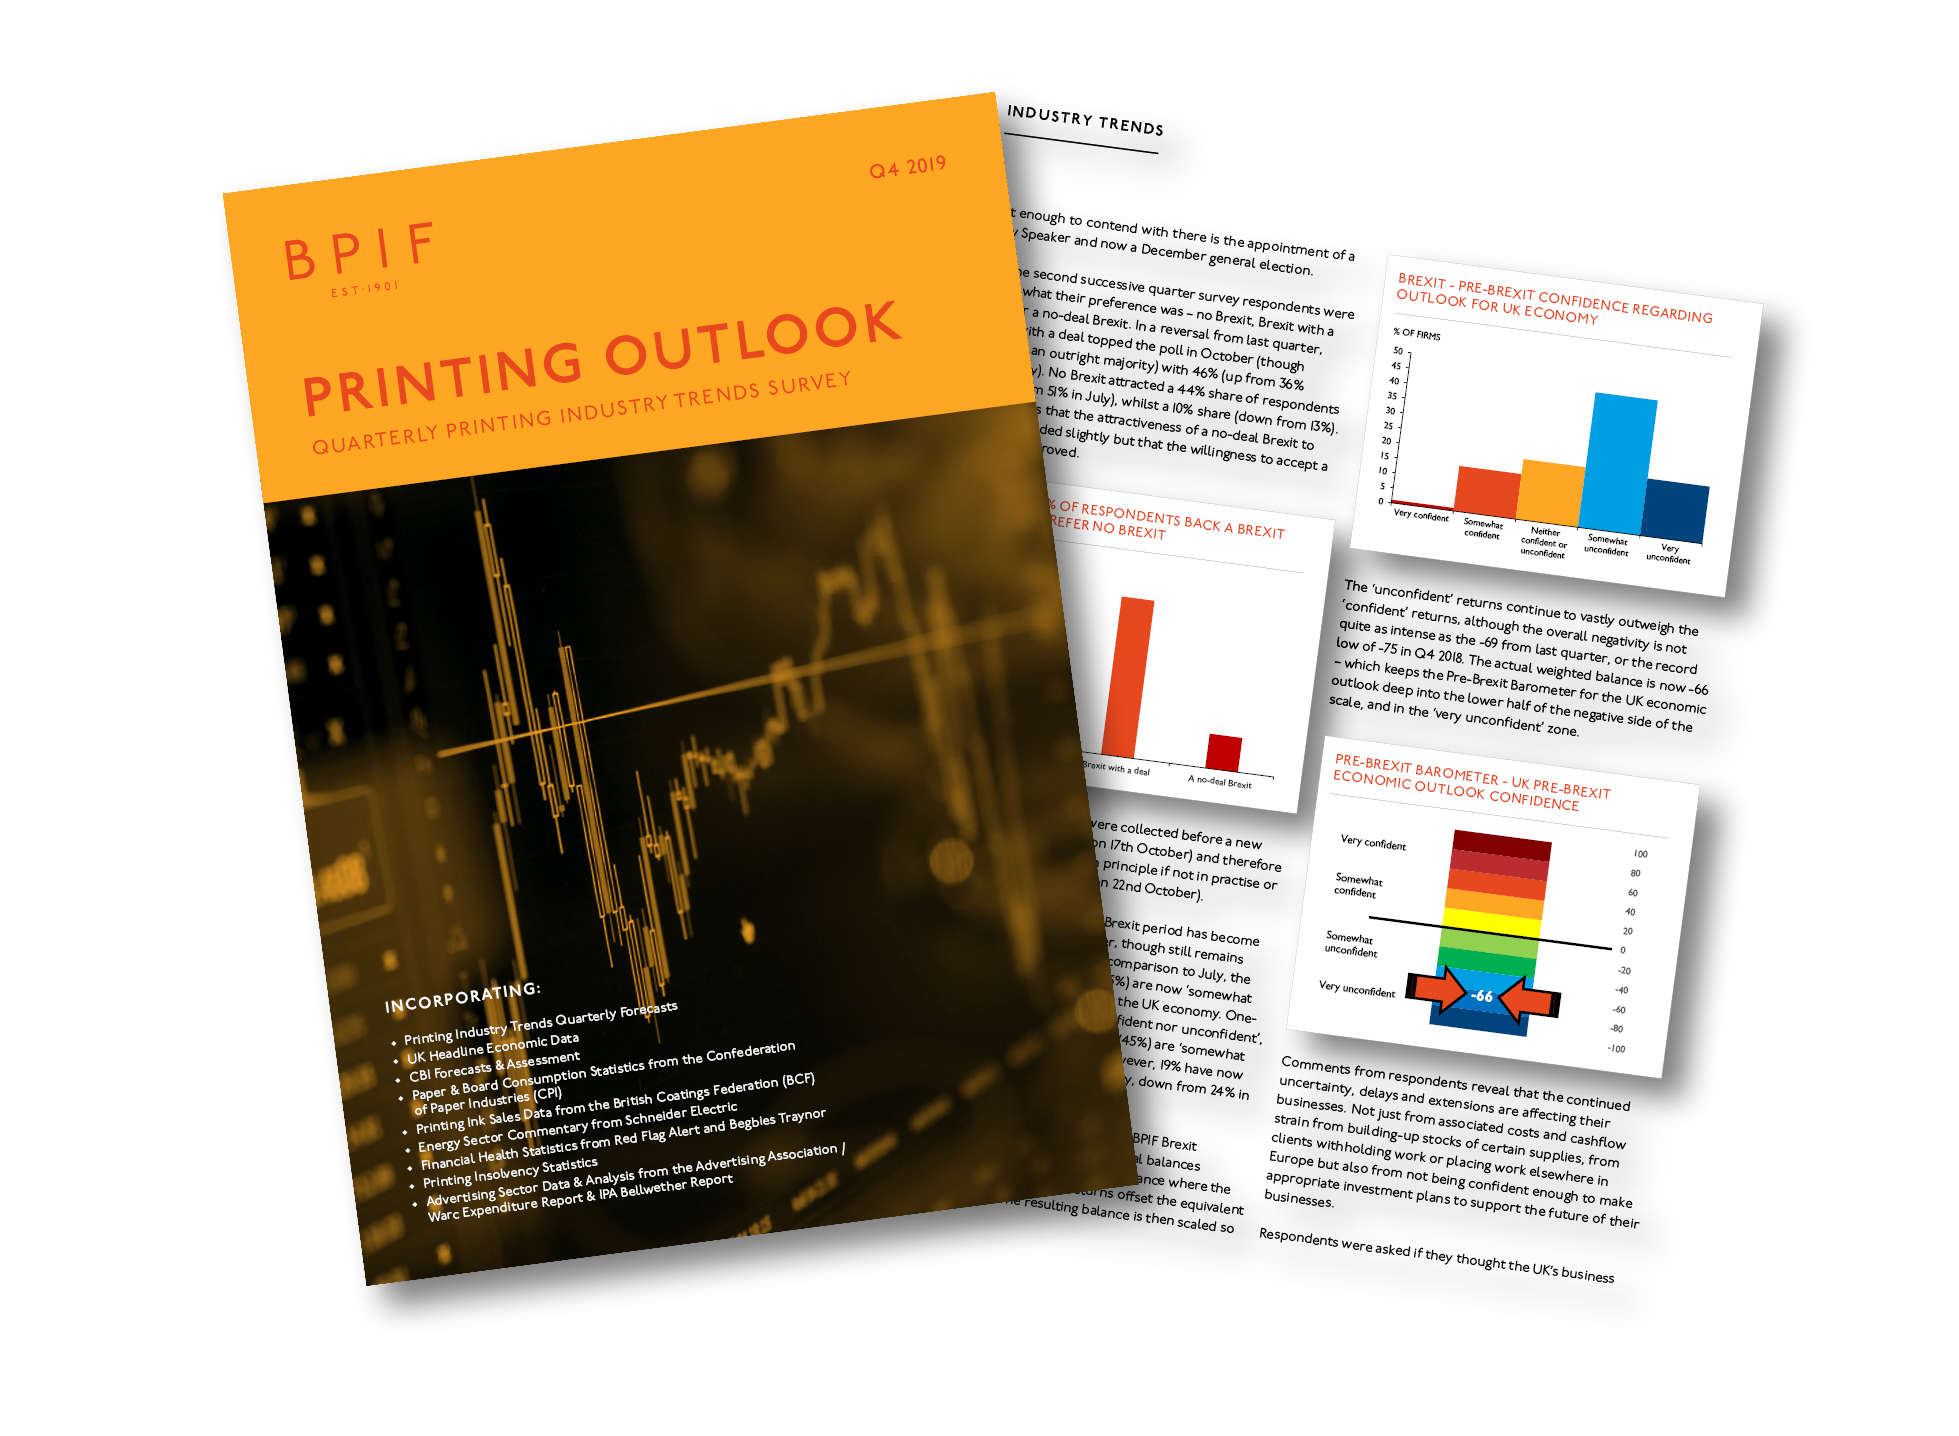 Strong recovery in UK printing industry in Q2 but activity still short of pre-Covid levels